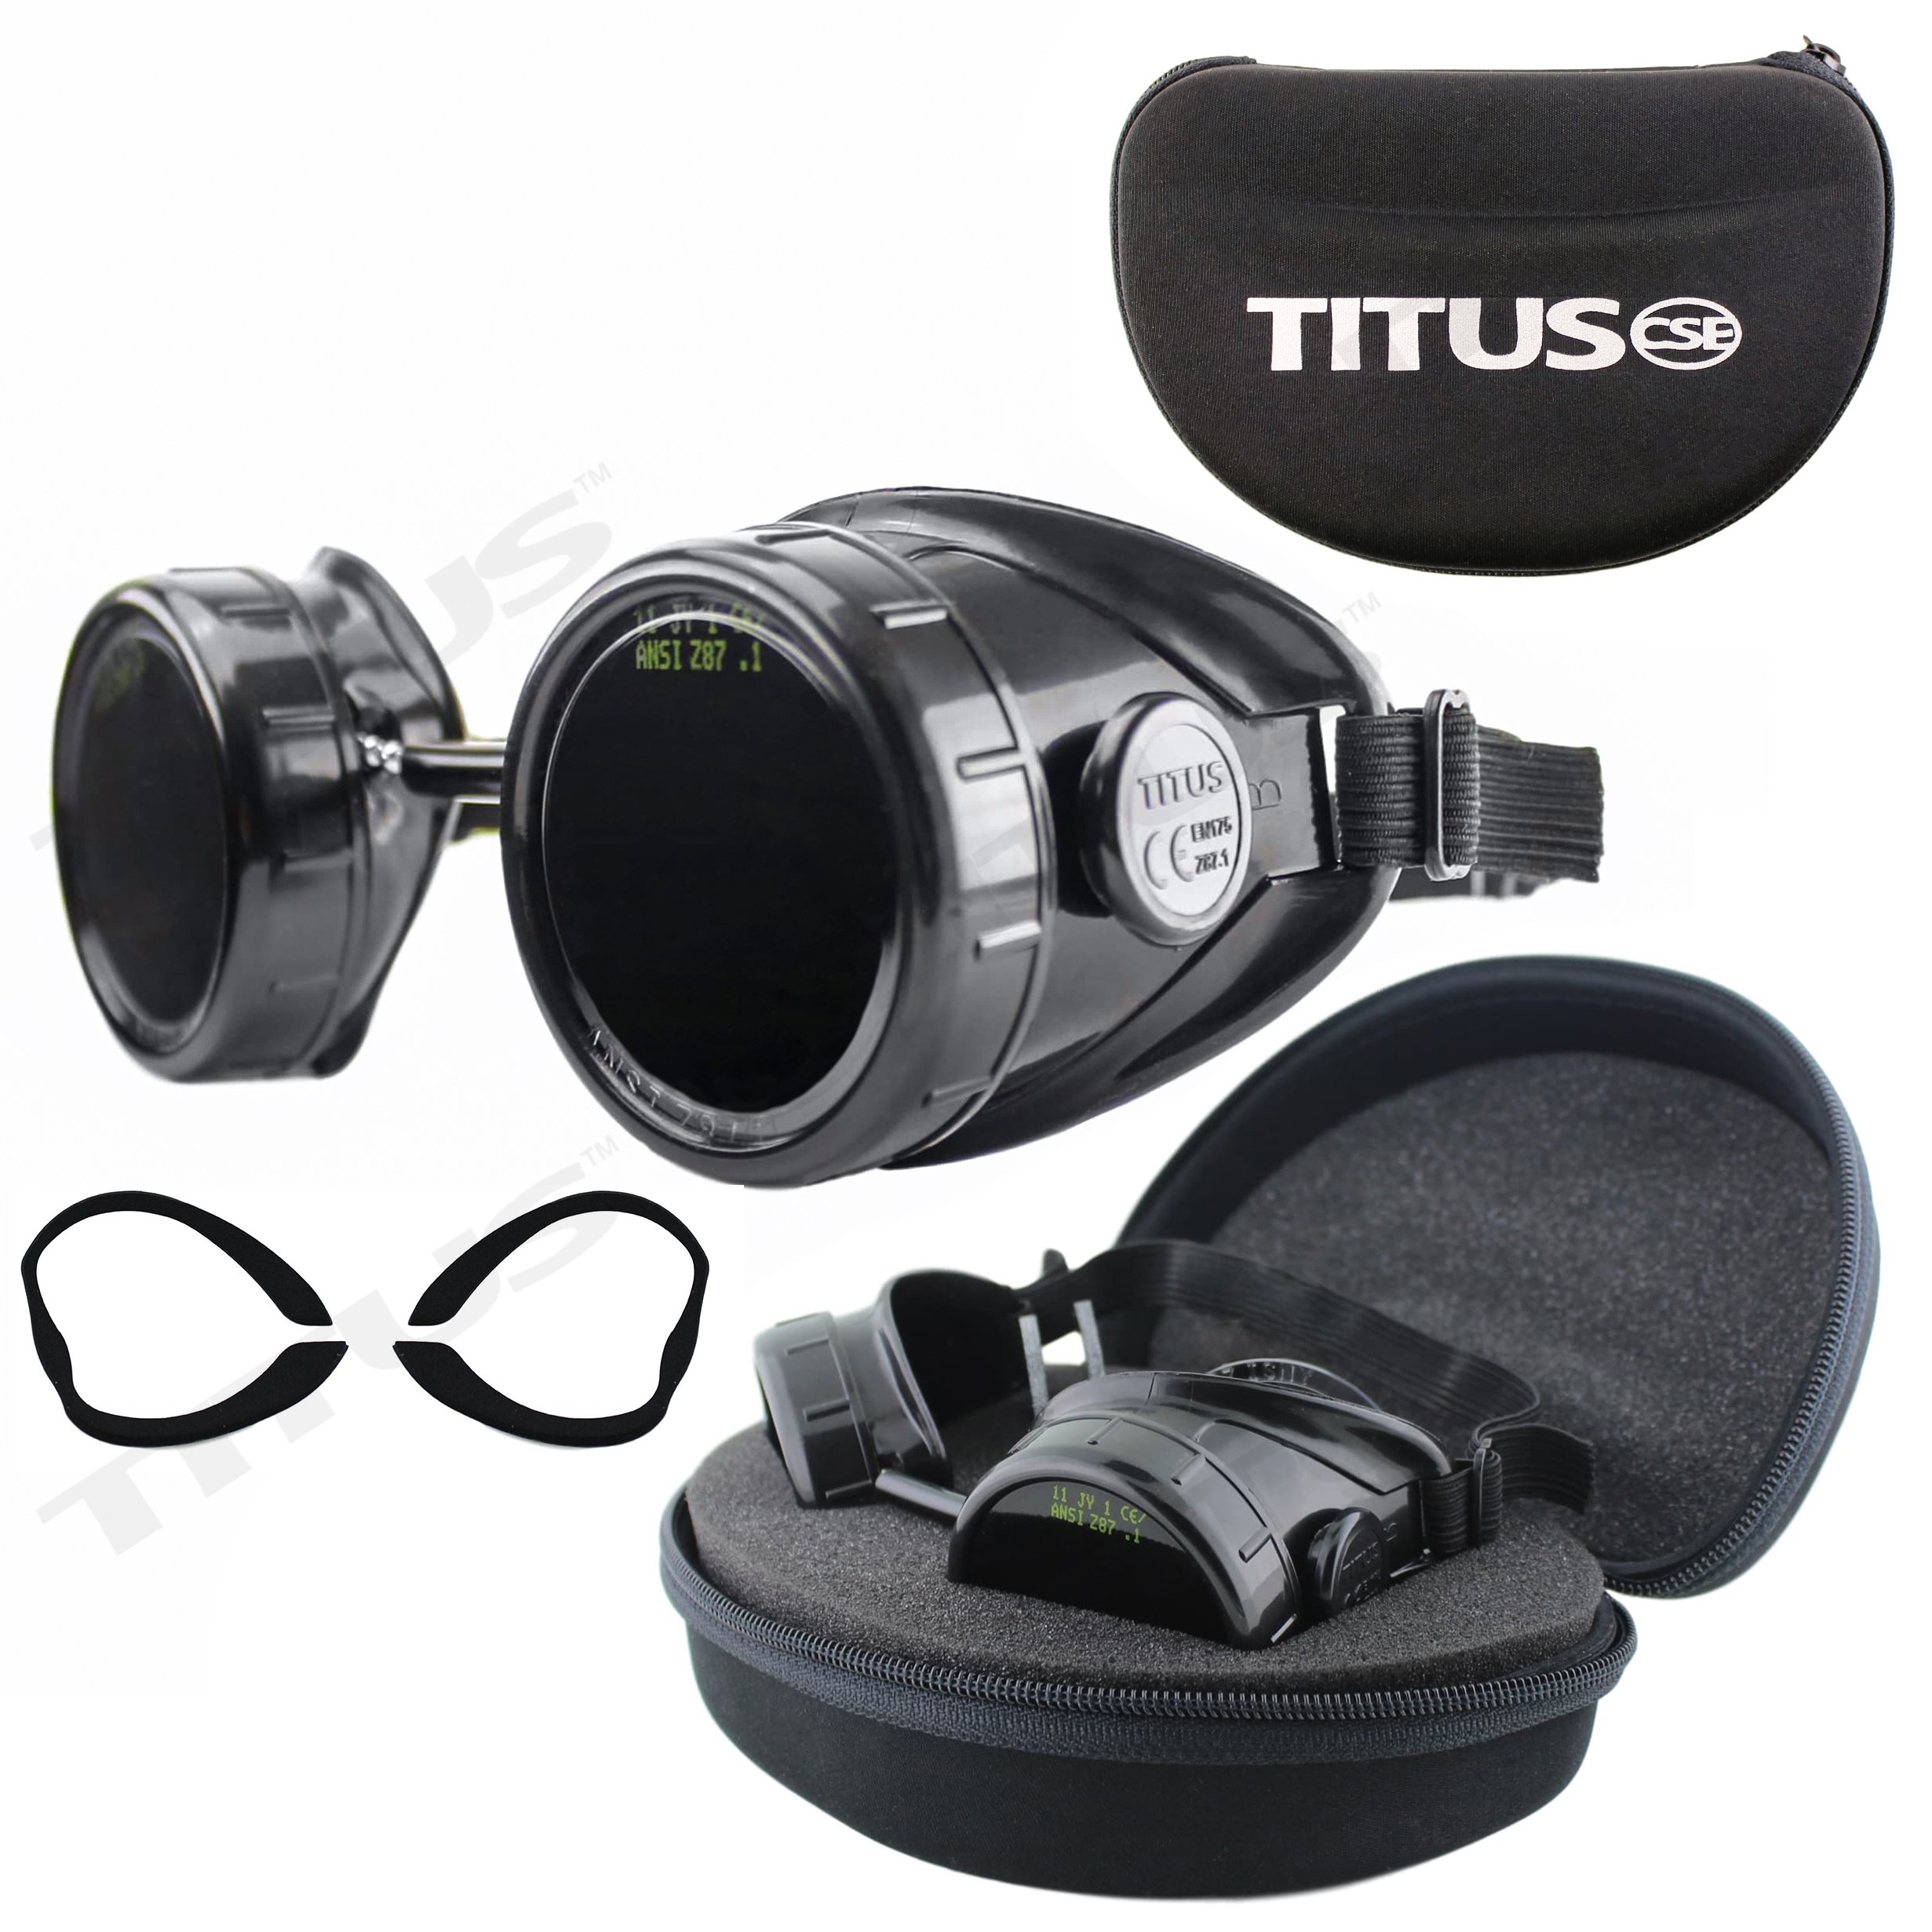 TITUS Welding Safety Goggles with Interchangeable Lenses (Low: #5, #8, #11)